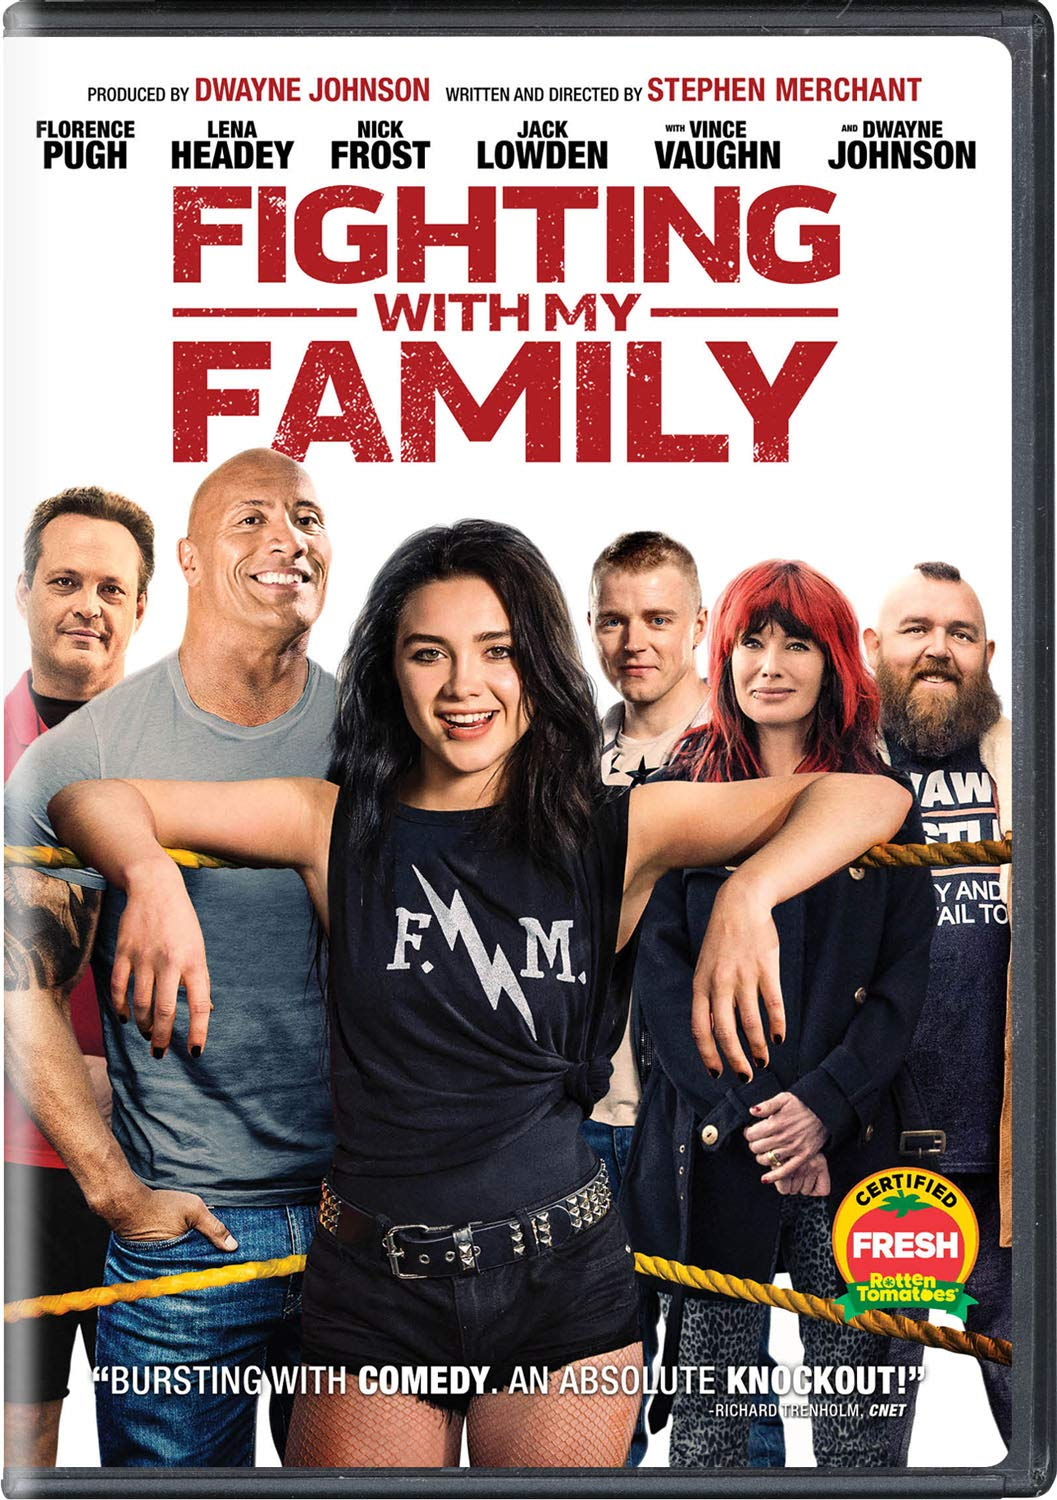 Fighting with my family paige